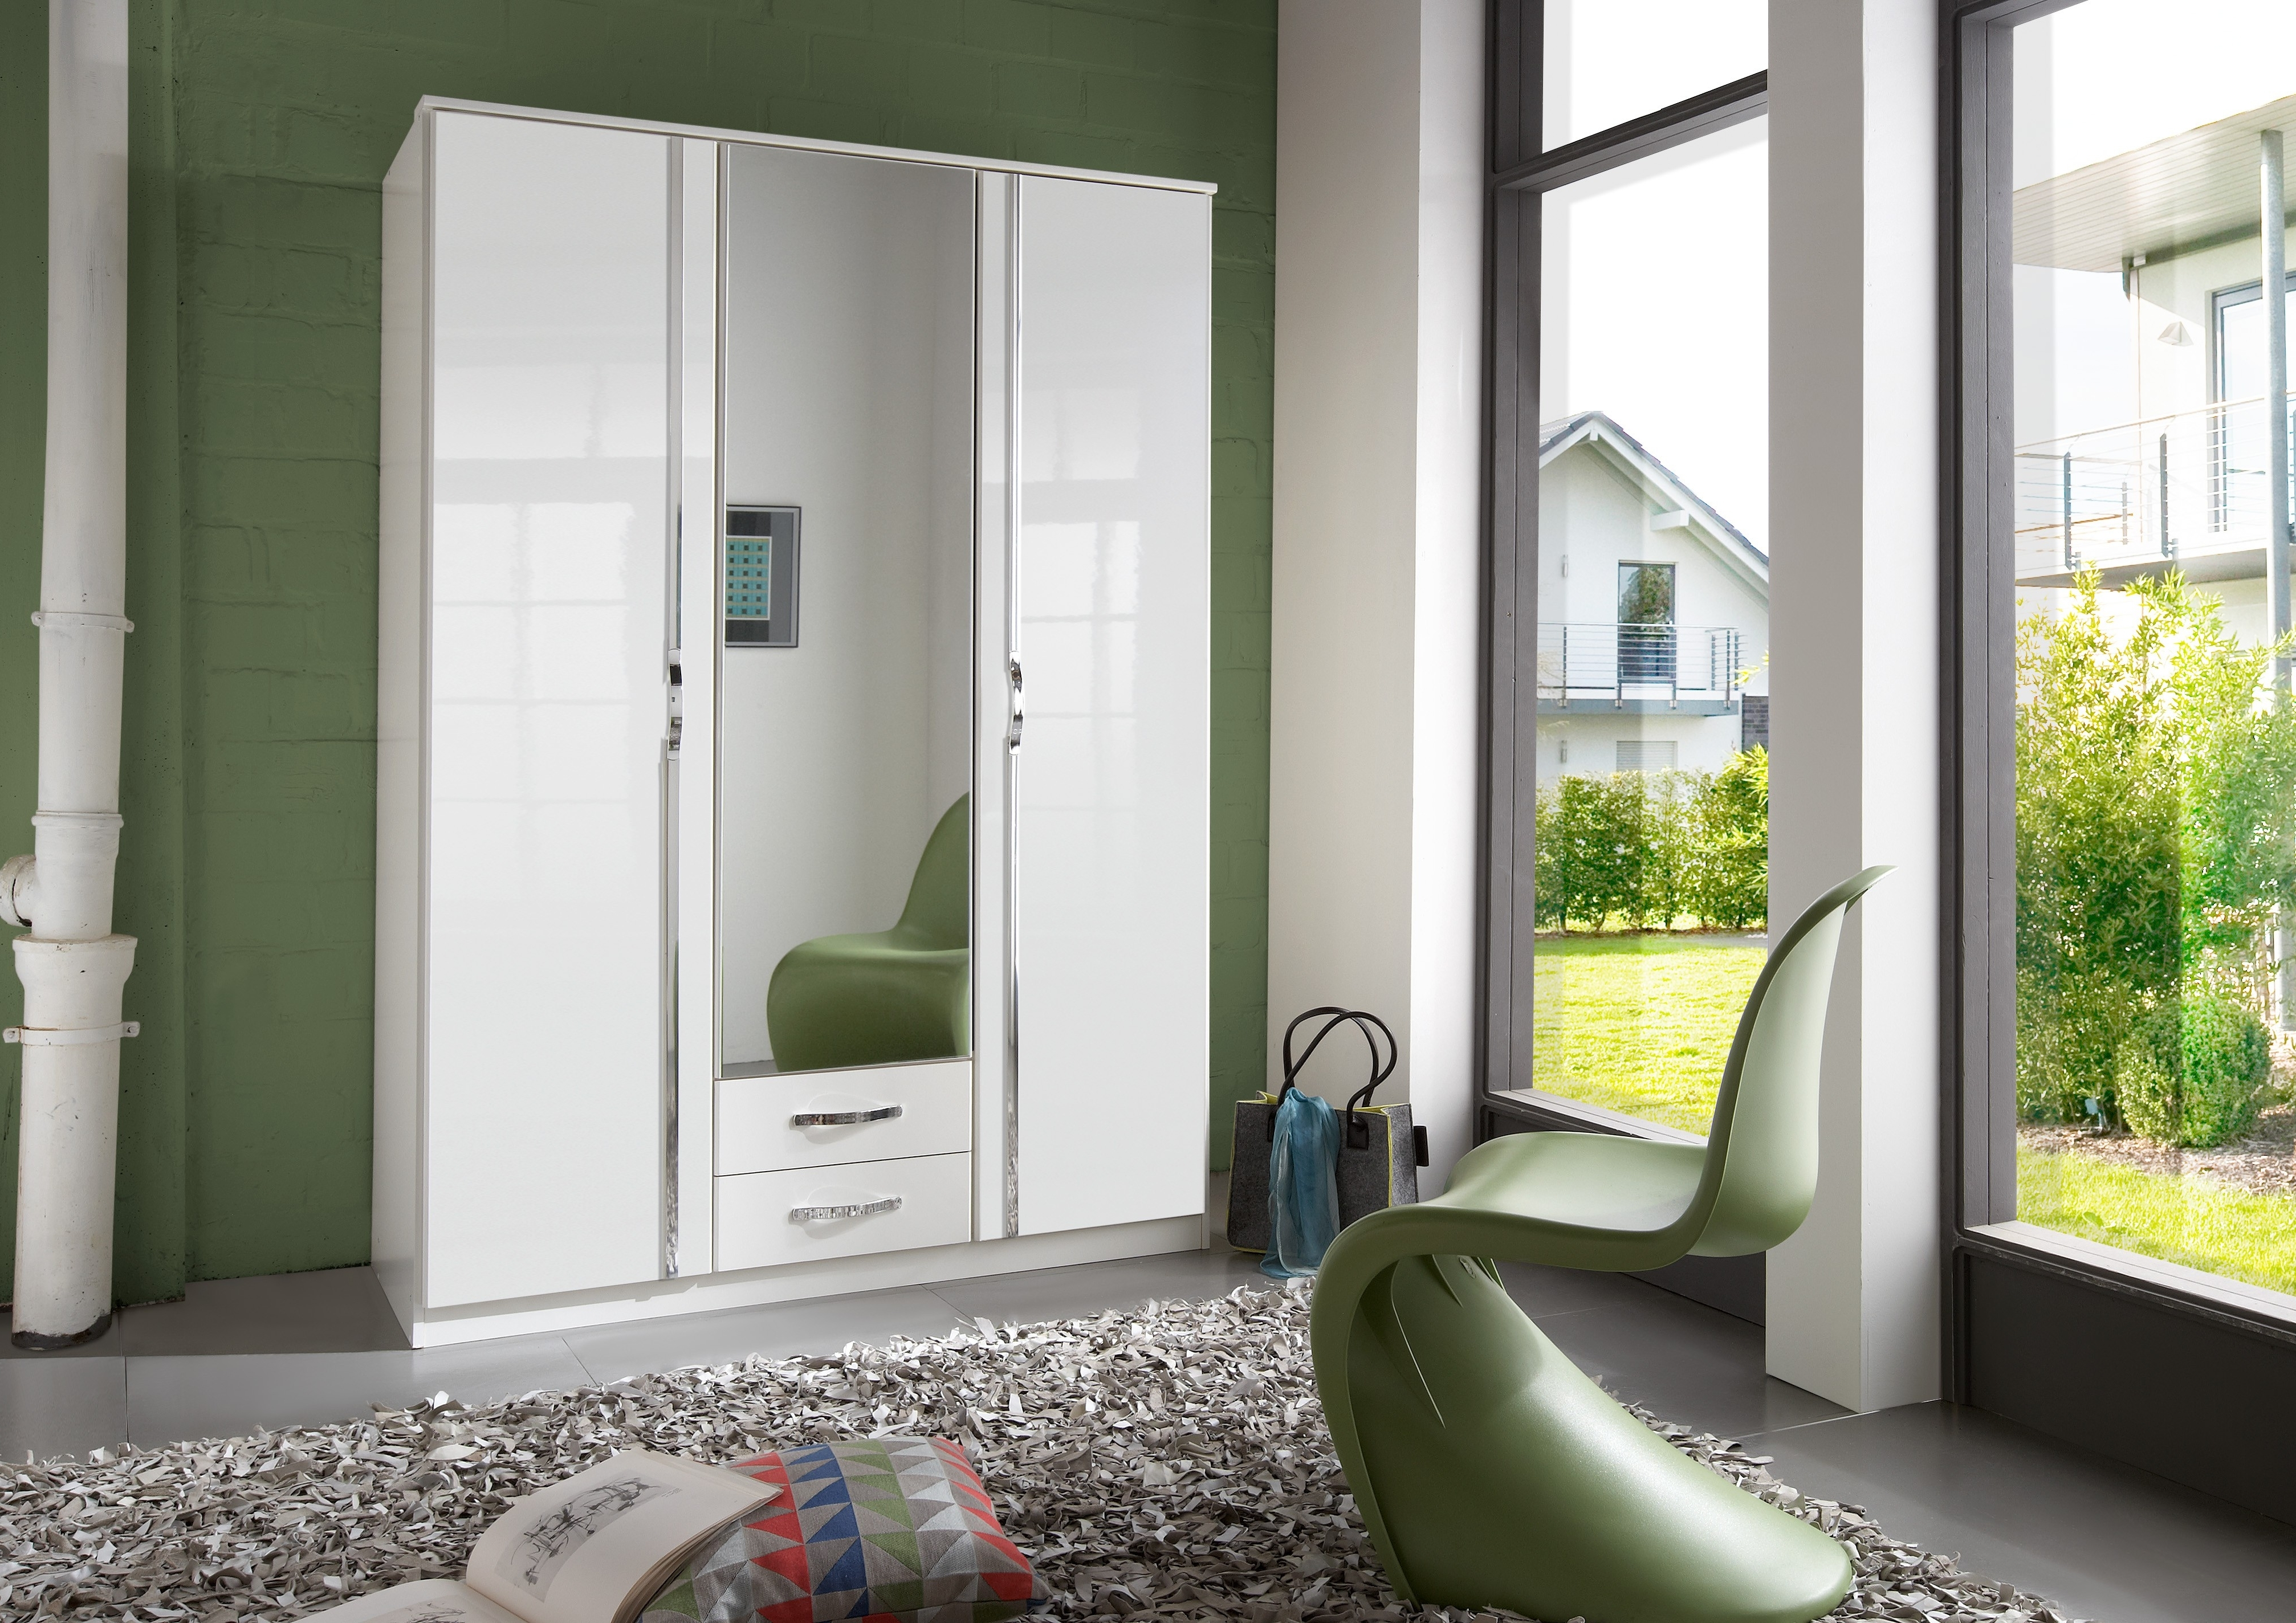 Preferred White Wardrobe With Mirror Amazon Drawers And Sliding Door Doors For White 3 Door Wardrobes With Mirror (View 8 of 15)